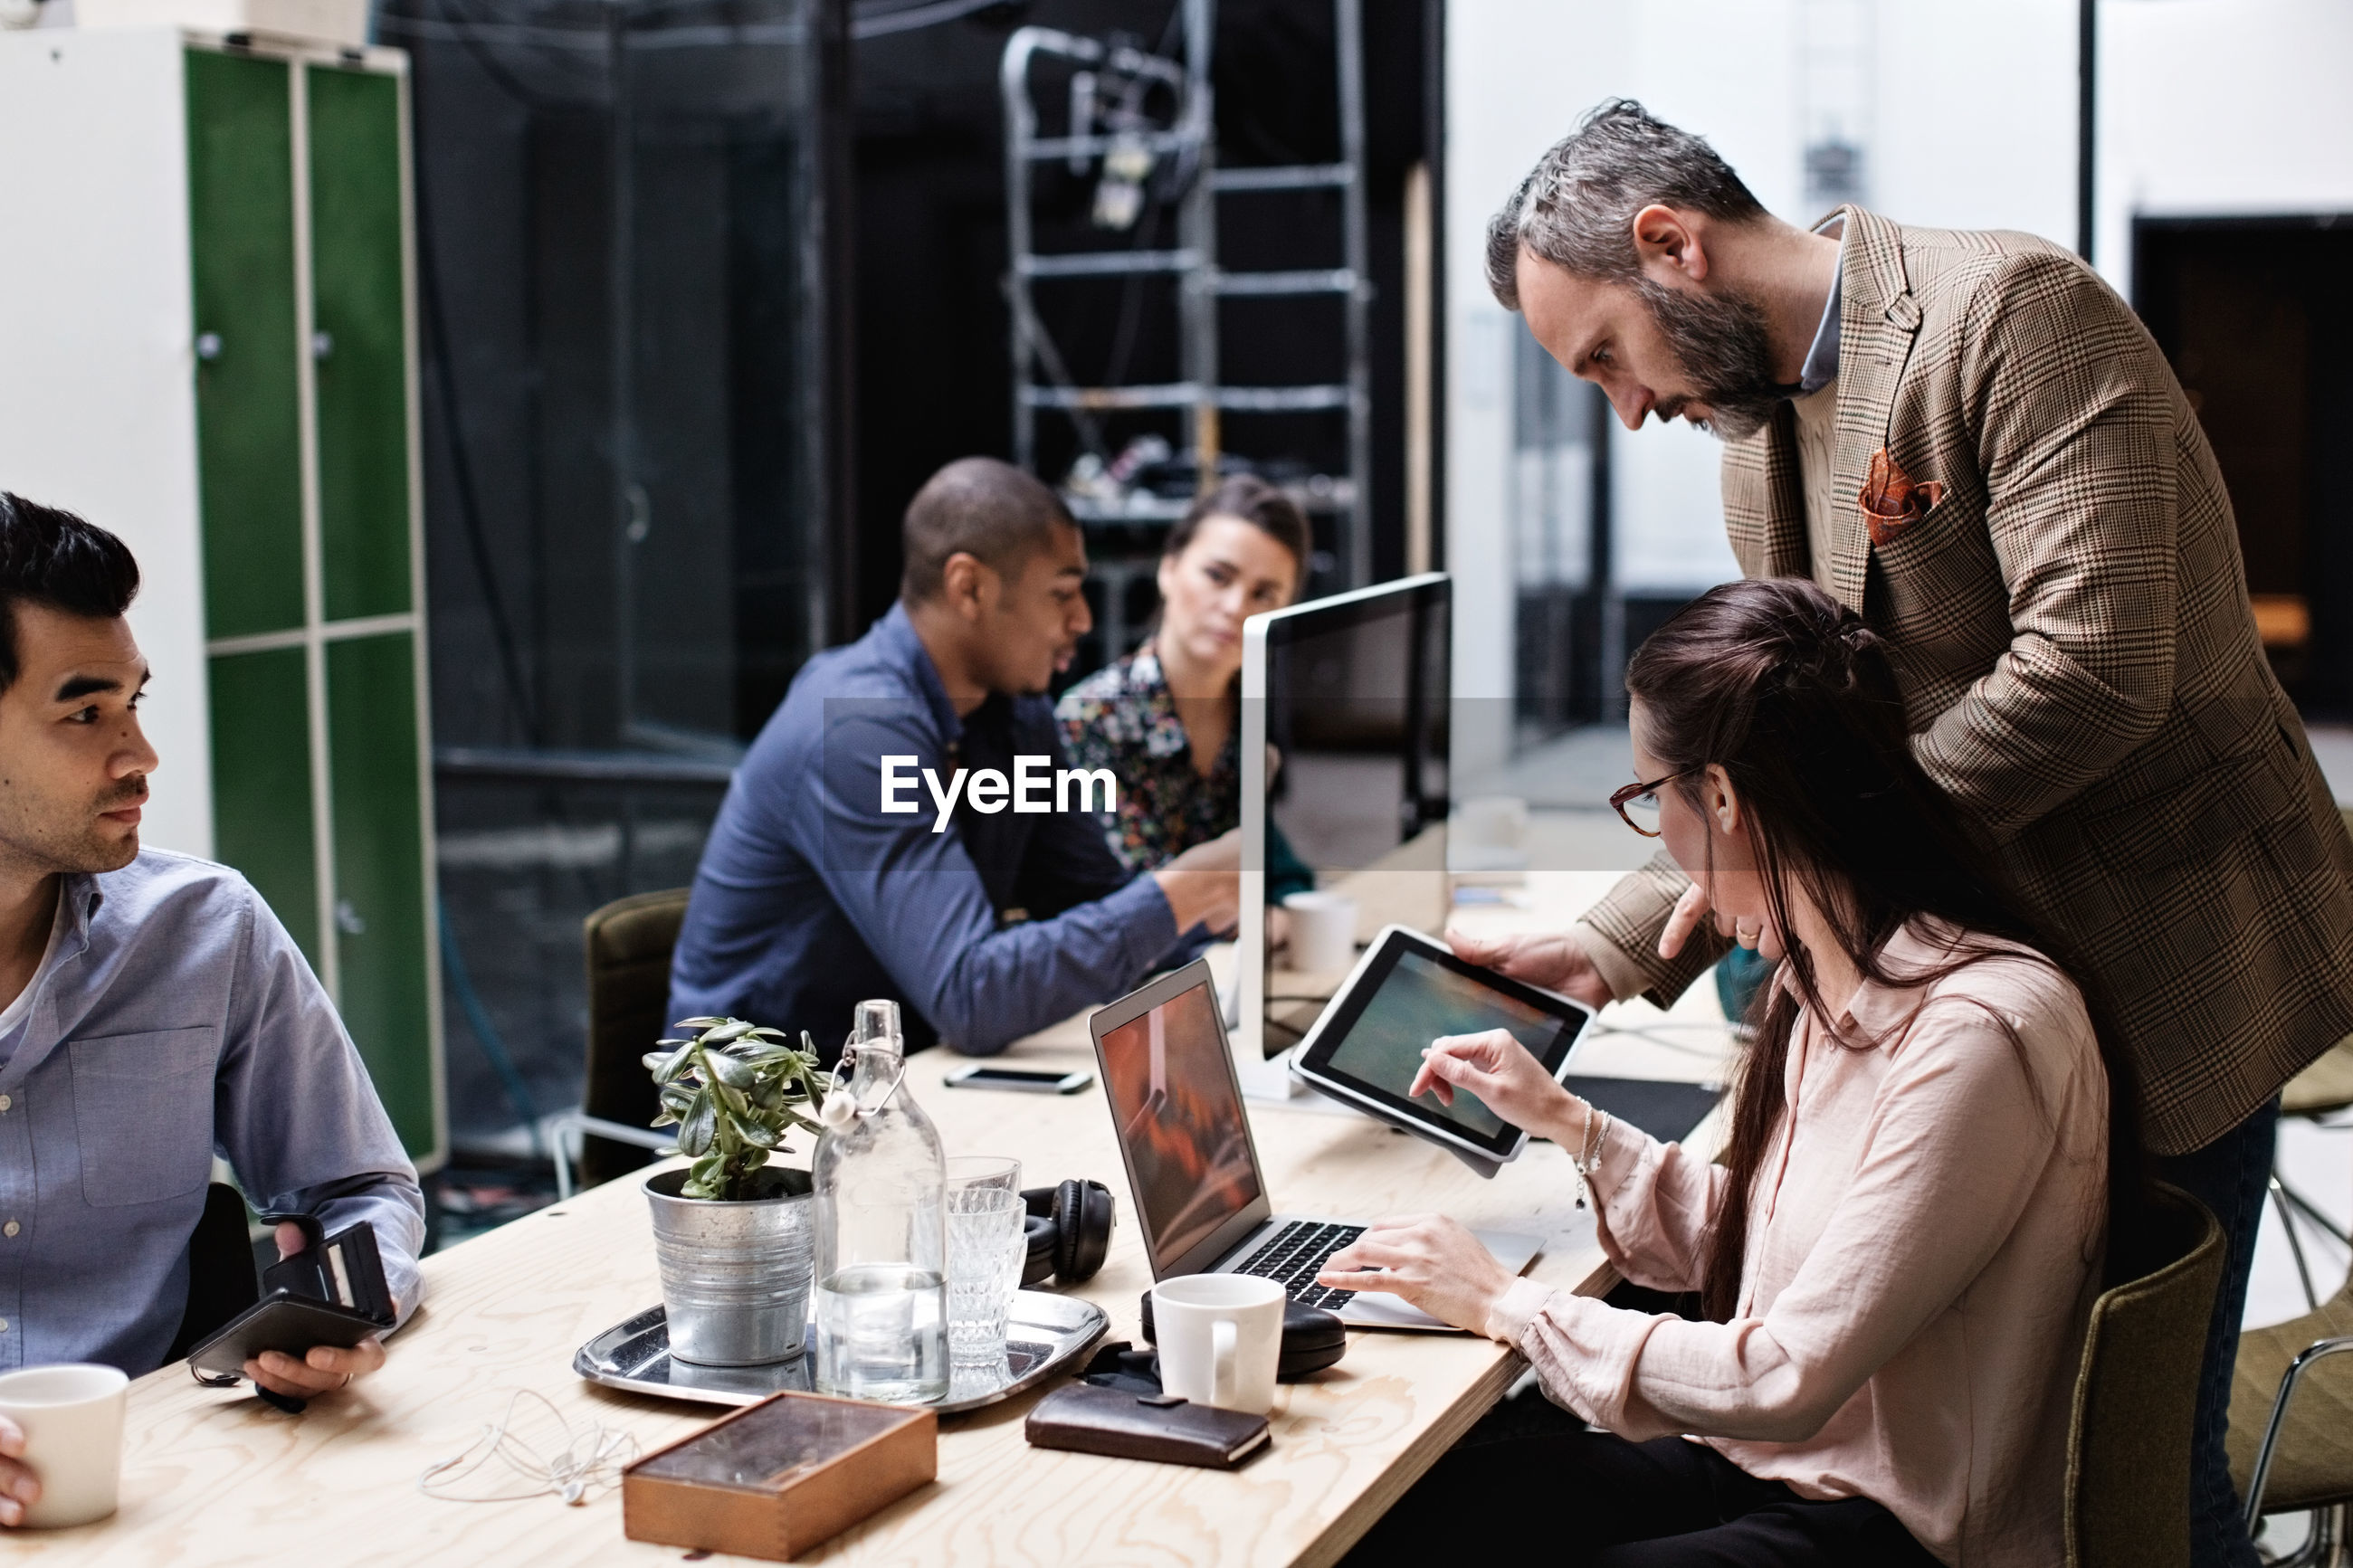 Businessman discussing over digital tablet with colleagues in office meeting